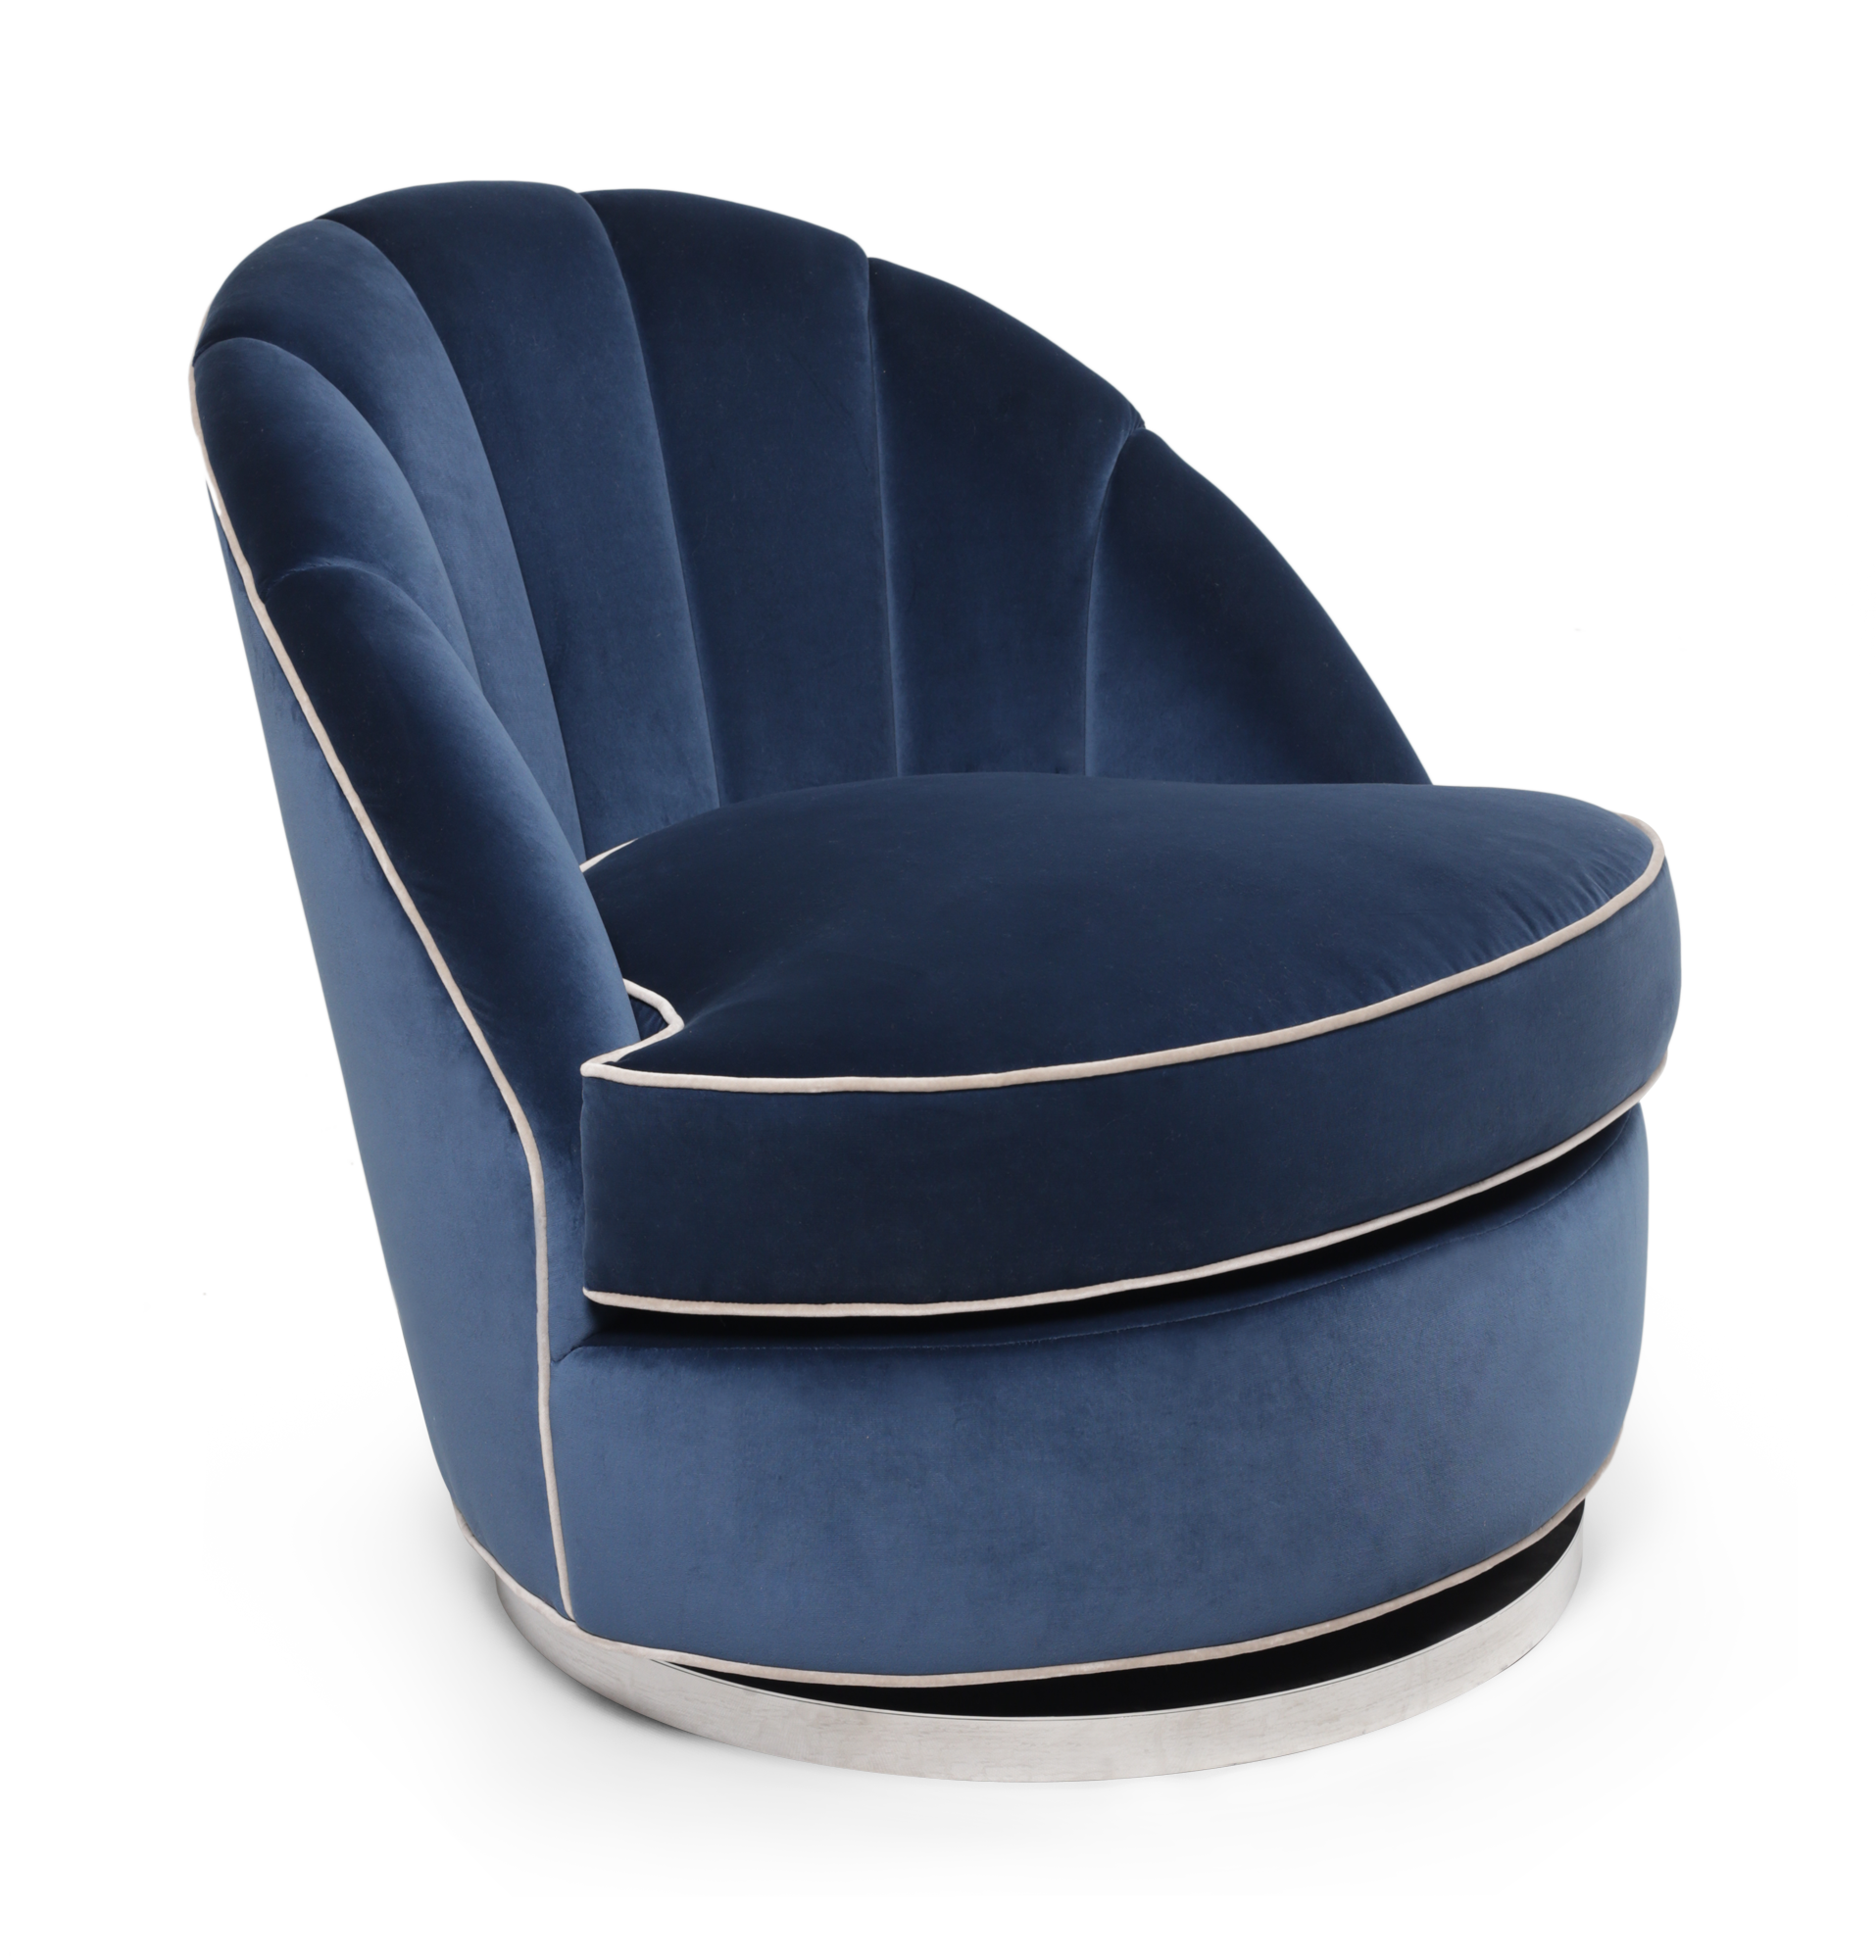 Brufani Armchair | Armchair, Furniture, Cheap furniture